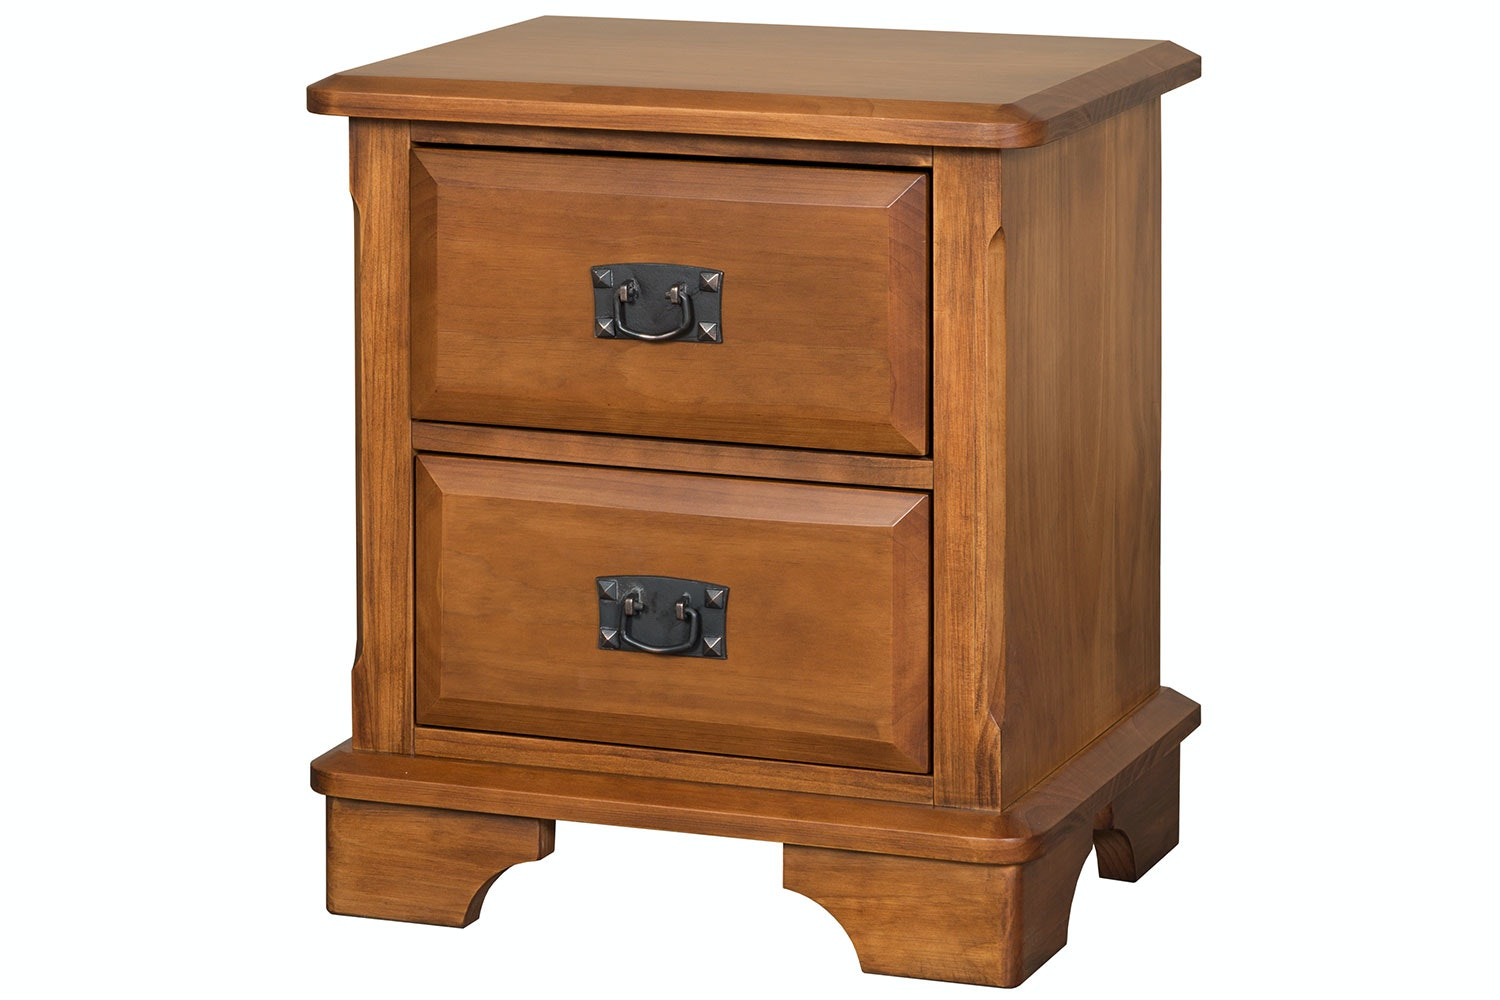 Maison 2 Drawer Bedside Table by Coastwood Furniture